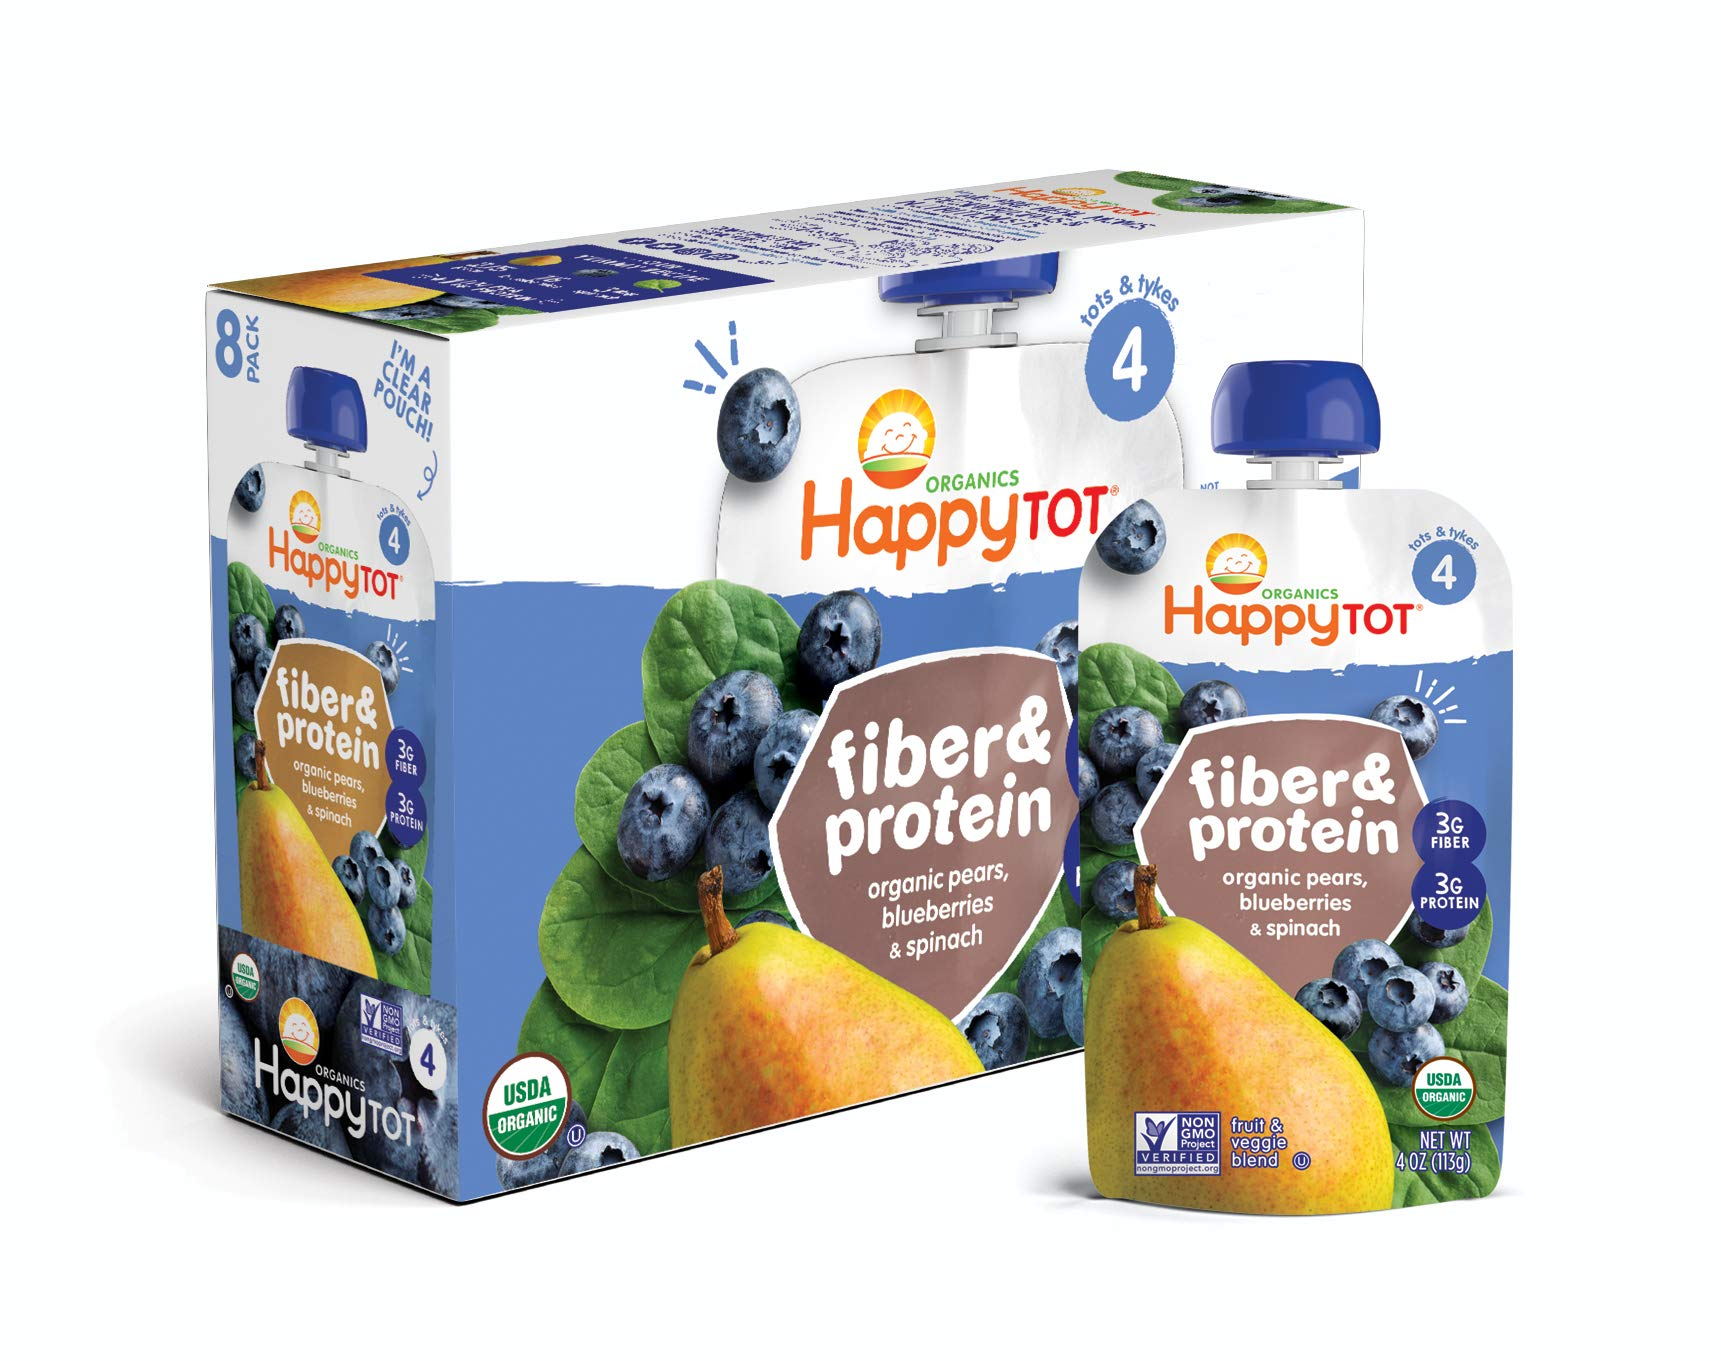 Happy Tot Organic Stage 4 Fiber & Protein, Pears, Blueberries & Spinach, 4 Ounce (Pack of 16) by Happy Baby